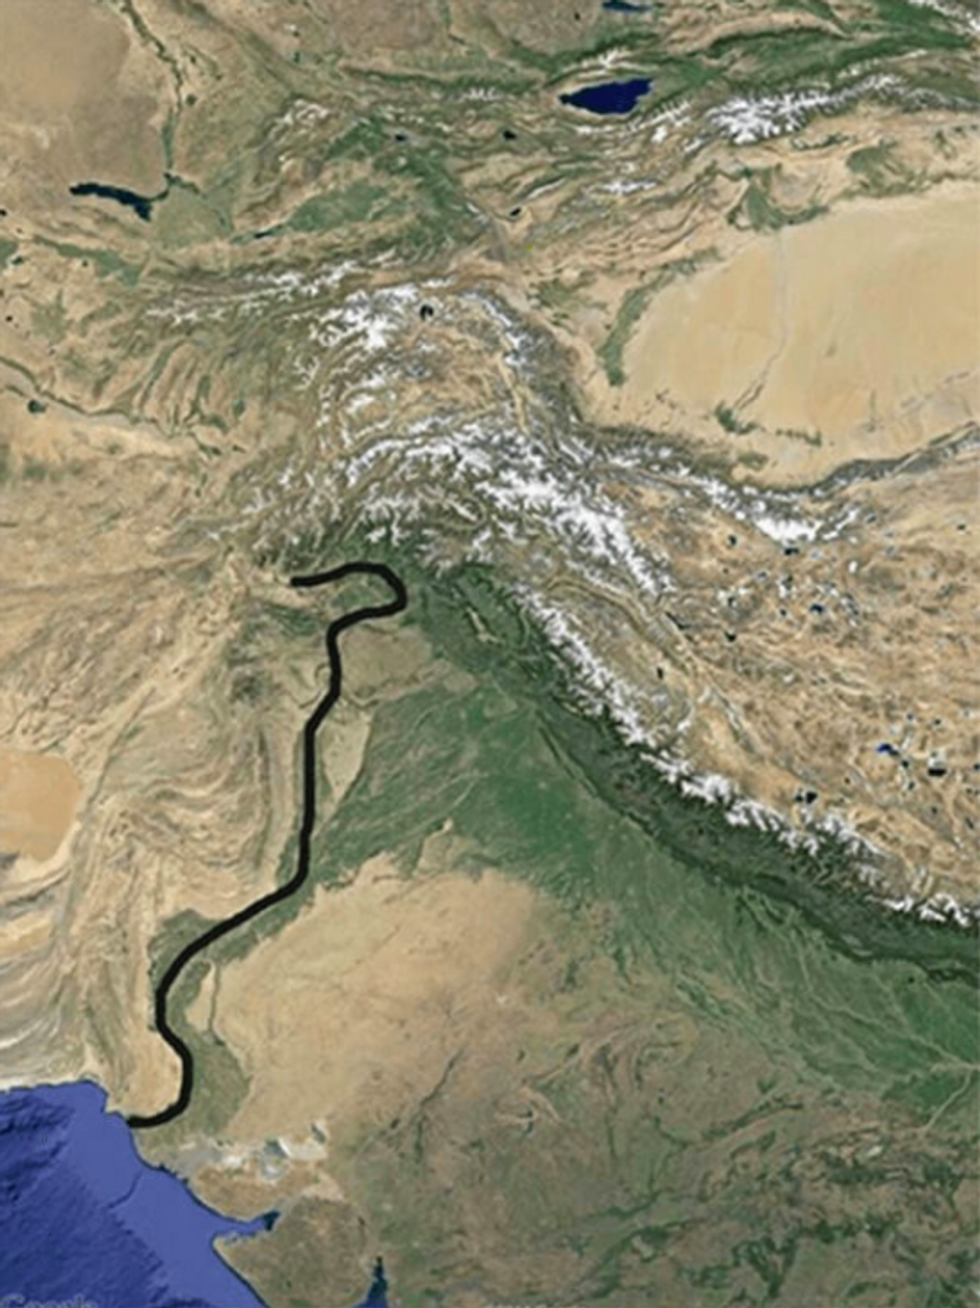 \u200bThe Indus river is a prominent geographical feature of Pakistan. Its course is similar to that of the Anduin, the Great River of Middle-earth.